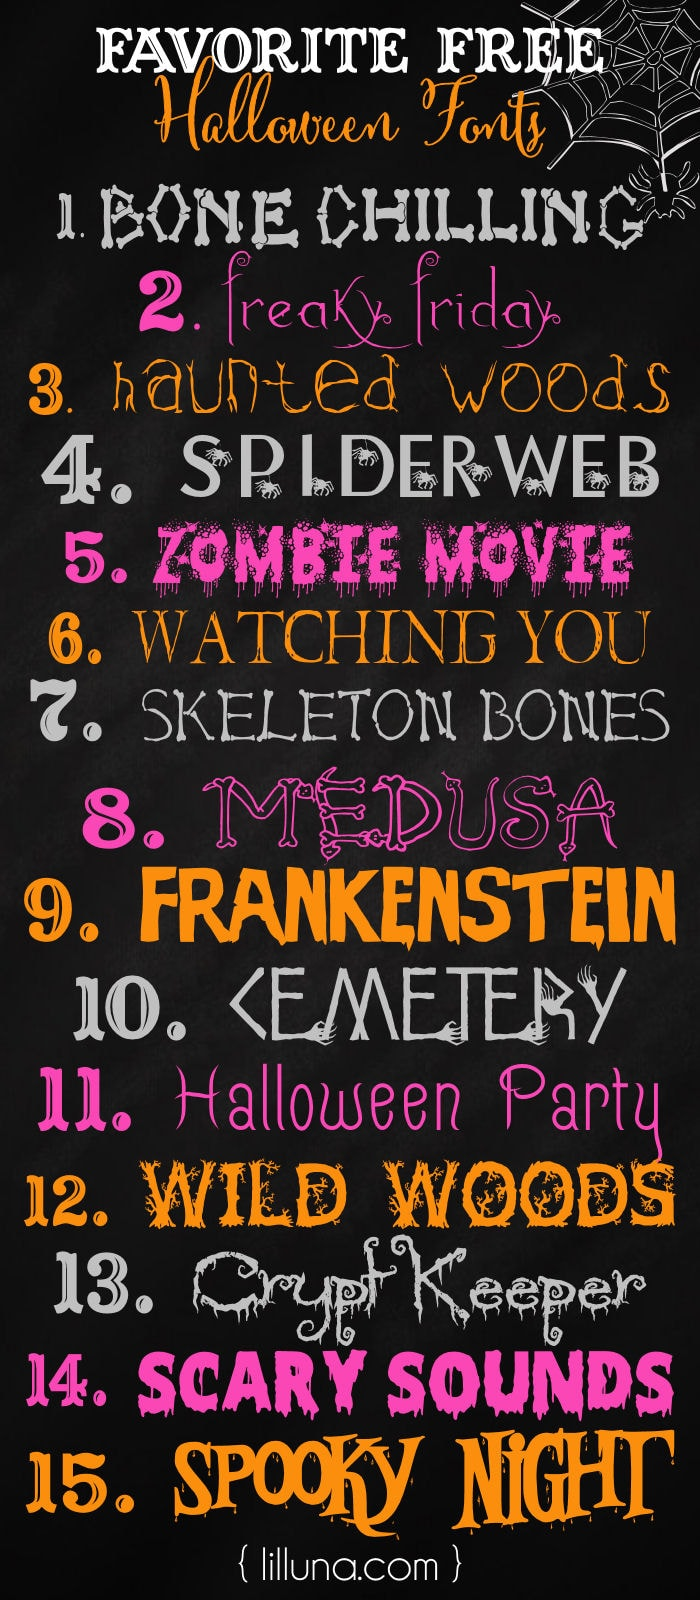 FREE Halloween Fonts - so many great ones to use in your own creations on { lilluna.com }